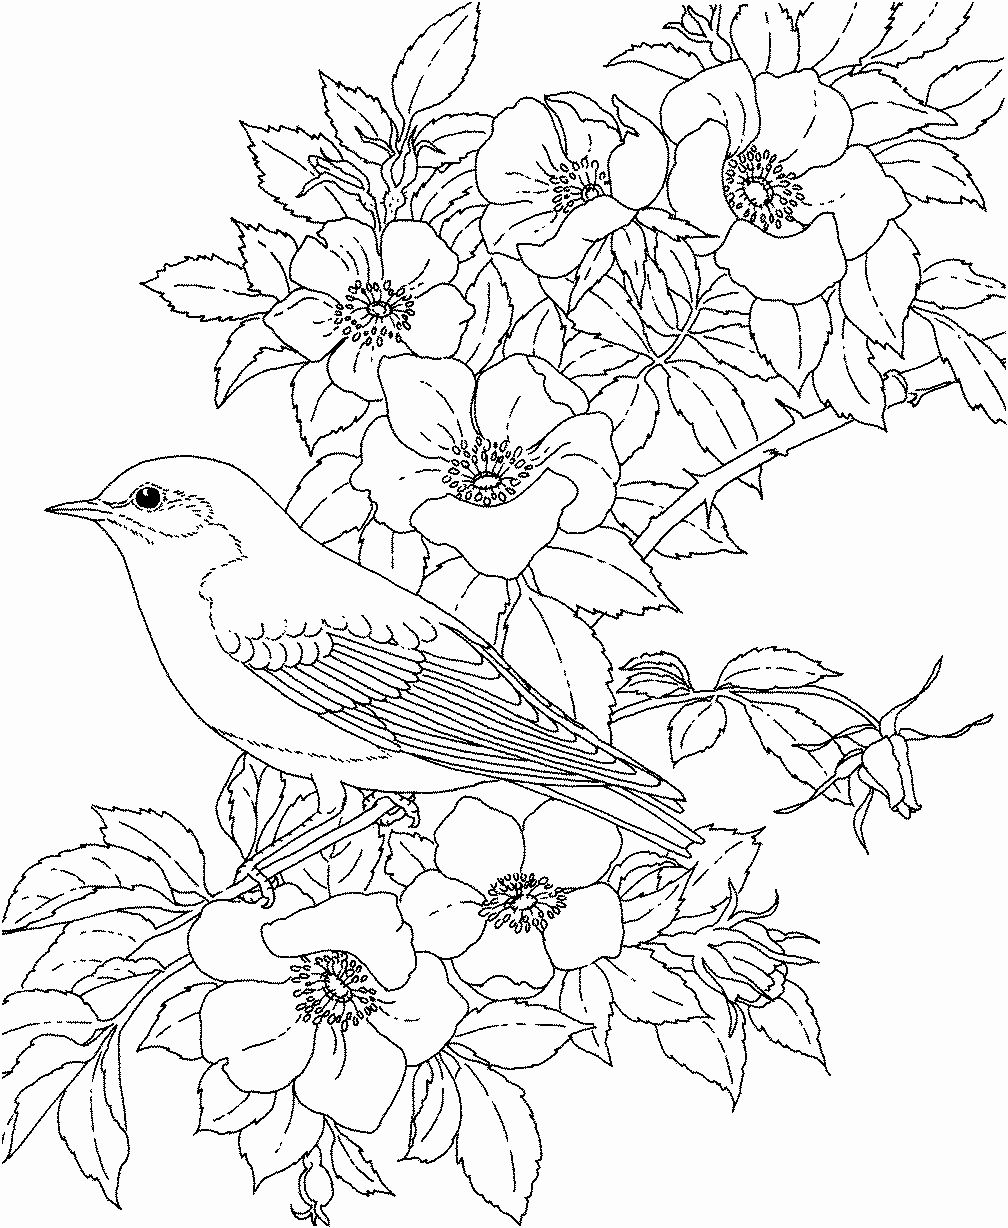 Flowers Coloring Book Pdf Best Of Coloring Pages Birds And Flowers Bird Coloring Pages Animal Coloring Pages Flower Coloring Pages